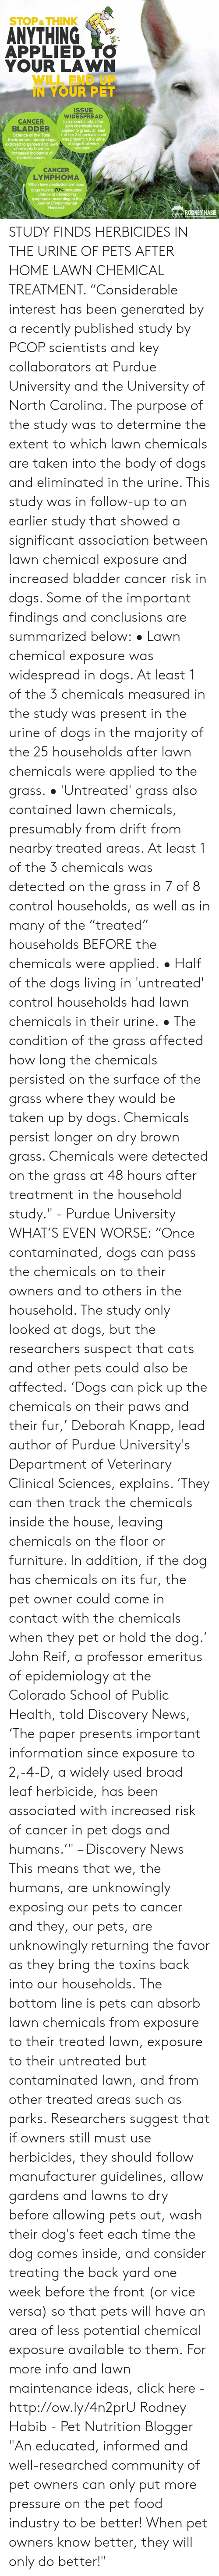 "purdue university: STOP &THINK  ANYTHING  APPLIED TO  YOUR LAWN  WILL END UP  IN YOUR PET  ISSUE  WIDESPREAD  In a recent study, after  lawn chemicals were  applied to grass, at least  1 of the 3 chemicals used  CANCER  BLADDER  Science of the Total  Environment states: dogs was present in the urine  exposed to garden and lawn of dogs that were  exposed  chemicals have an  increased incidence of  bladder cancer.  CANCER  LYMPHOMA  When lawn pesticides are used  dogs have a 70% increased  chance of developing  lymphoma, according to the  Journal Environmental  Research  RODNEY HABIB STUDY FINDS HERBICIDES IN THE URINE OF PETS AFTER HOME LAWN CHEMICAL TREATMENT.   ""Considerable interest has been generated by a recently published study by PCOP scientists and key collaborators at Purdue University and the University of North Carolina.    The purpose of the study was to determine the extent to which lawn chemicals are taken into the body of dogs and eliminated in the urine.   This study was in follow-up to an earlier study that showed a significant association between lawn chemical exposure and increased bladder cancer risk in dogs.   Some of the important findings and conclusions are summarized below:  • Lawn chemical exposure was widespread in dogs. At least 1 of the 3 chemicals measured in the study was present in the urine of dogs in the majority of the 25 households after lawn chemicals were applied to the grass.  • 'Untreated' grass also contained lawn chemicals, presumably from drift from nearby treated areas.  At least 1 of the 3 chemicals was detected on the grass in 7 of 8 control households, as well as in many of the ""treated"" households BEFORE the chemicals were applied.  • Half of the dogs living in 'untreated' control households had lawn chemicals in their urine.  • The condition of the grass affected how long the chemicals persisted on the surface of the grass where they would be taken up by dogs. Chemicals persist longer on dry brown grass.  Chemicals were detected on the grass at 48 hours after treatment in the household study."" - Purdue University   WHAT'S EVEN WORSE:  ""Once contaminated, dogs can pass the chemicals on to their owners and to others in the household. The study only looked at dogs, but the researchers suspect that cats and other pets could also be affected.  'Dogs can pick up the chemicals on their paws and their fur,' Deborah Knapp, lead author of Purdue University's Department of Veterinary Clinical Sciences, explains. 'They can then track the chemicals inside the house, leaving chemicals on the floor or furniture. In addition, if the dog has chemicals on its fur, the pet owner could come in contact with the chemicals when they pet or hold the dog.'  John Reif, a professor emeritus of epidemiology at the Colorado School of Public Health, told Discovery News, 'The paper presents important information since exposure to 2,-4-D, a widely used broad leaf herbicide, has been associated with increased risk of cancer in pet dogs and humans.'"" – Discovery News  This means that we, the humans, are unknowingly exposing our pets to cancer and they, our pets, are unknowingly returning the favor as they bring the toxins back into our households.  The bottom line is pets can absorb lawn chemicals from exposure to their treated lawn, exposure to their untreated but contaminated lawn, and from other treated areas such as parks.  Researchers suggest that if owners still must use herbicides, they should follow manufacturer guidelines, allow gardens and lawns to dry before allowing pets out, wash their dog's feet each time the dog comes inside, and consider treating the back yard one week before the front (or vice versa) so that pets will have an area of less potential chemical exposure available to them.  For more info and lawn maintenance ideas, click here - http://ow.ly/4n2prU  Rodney Habib - Pet Nutrition Blogger   ""An educated, informed and well-researched community of pet owners can only put more pressure on the pet food industry to be better! When pet owners know better, they will only do better!"""